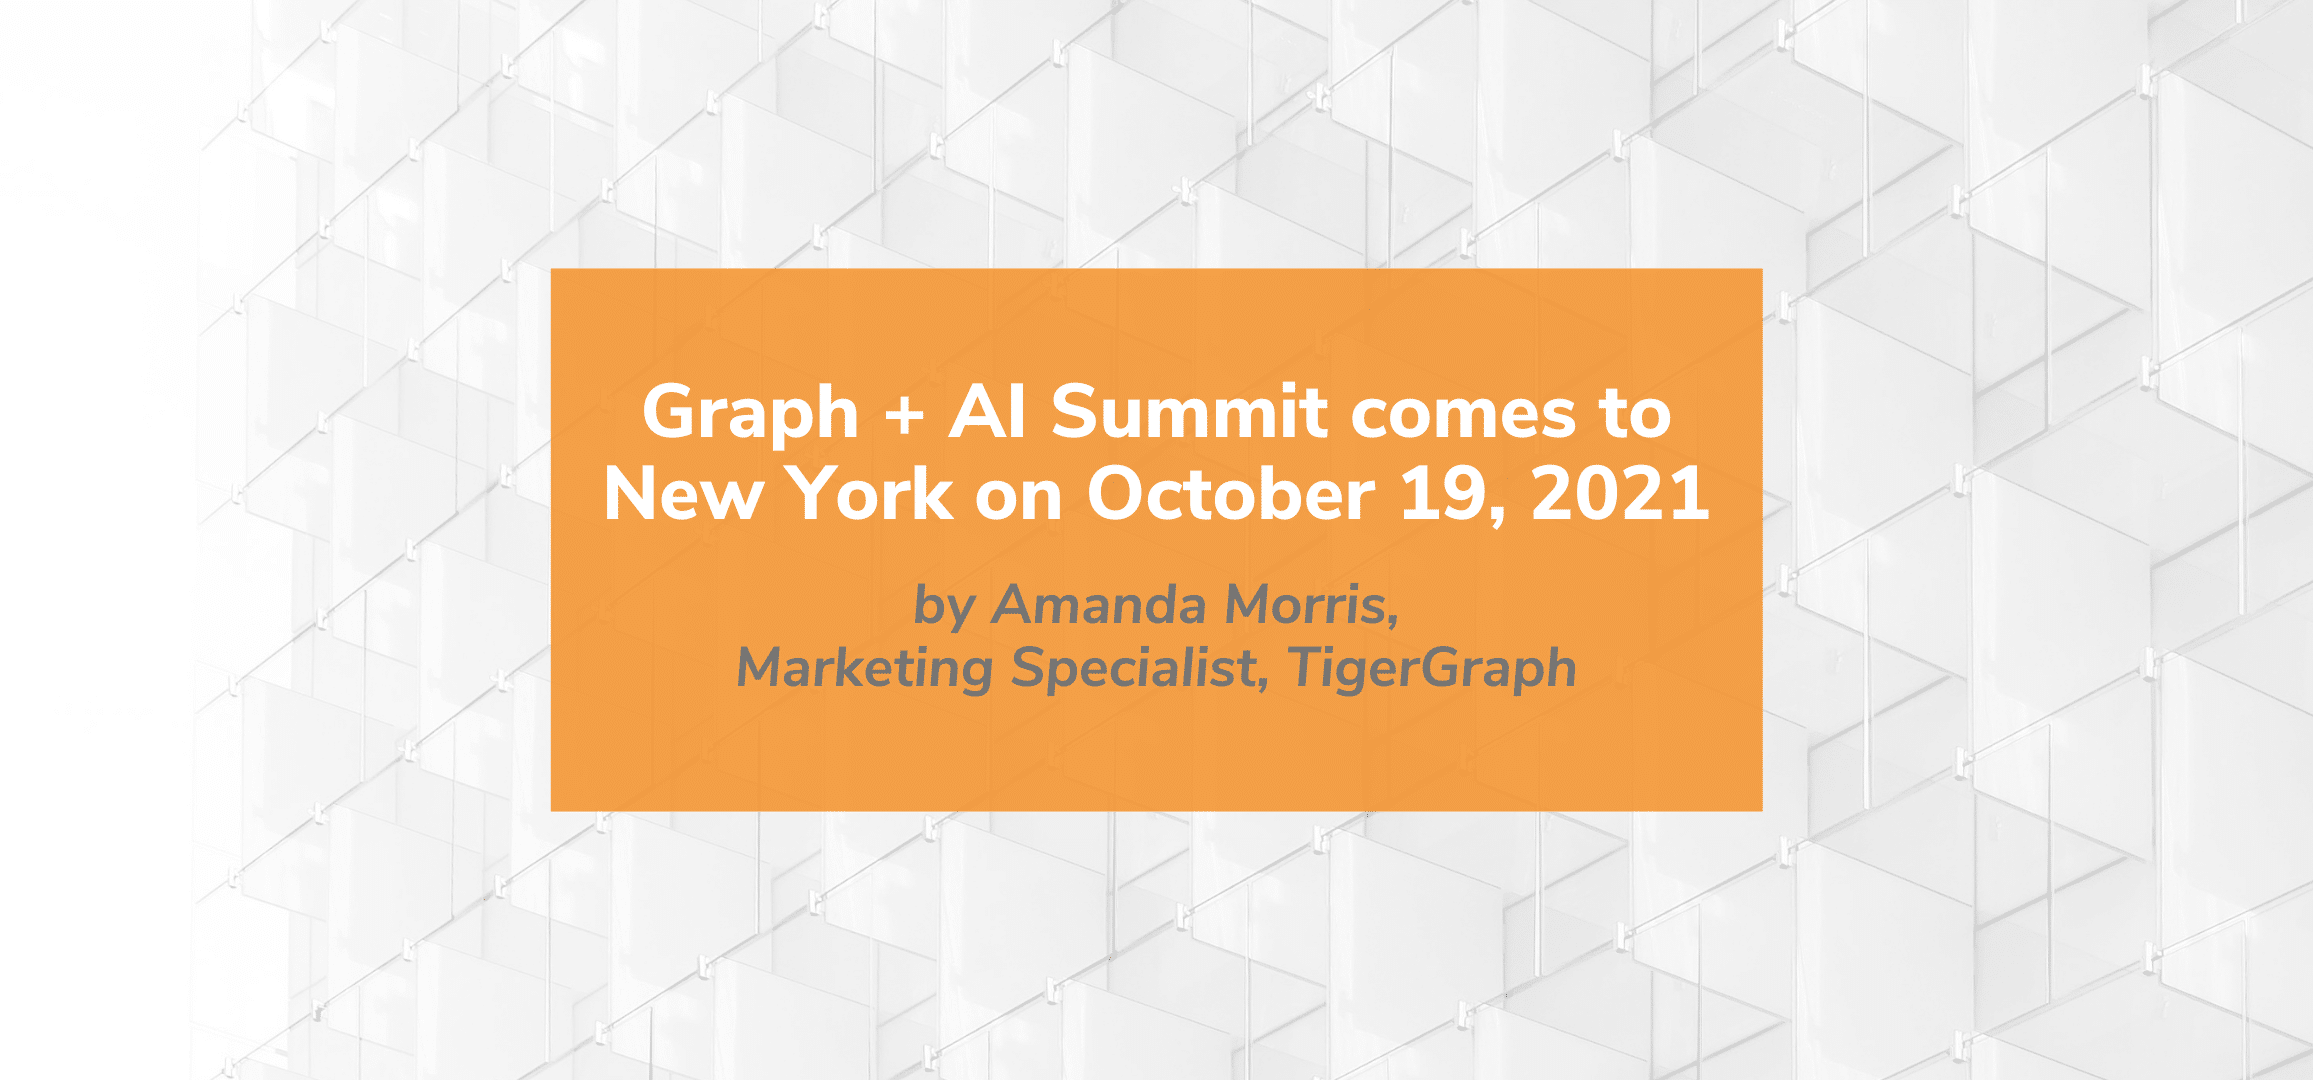 Graph + AI Summit comes to New York on October 19, 2021